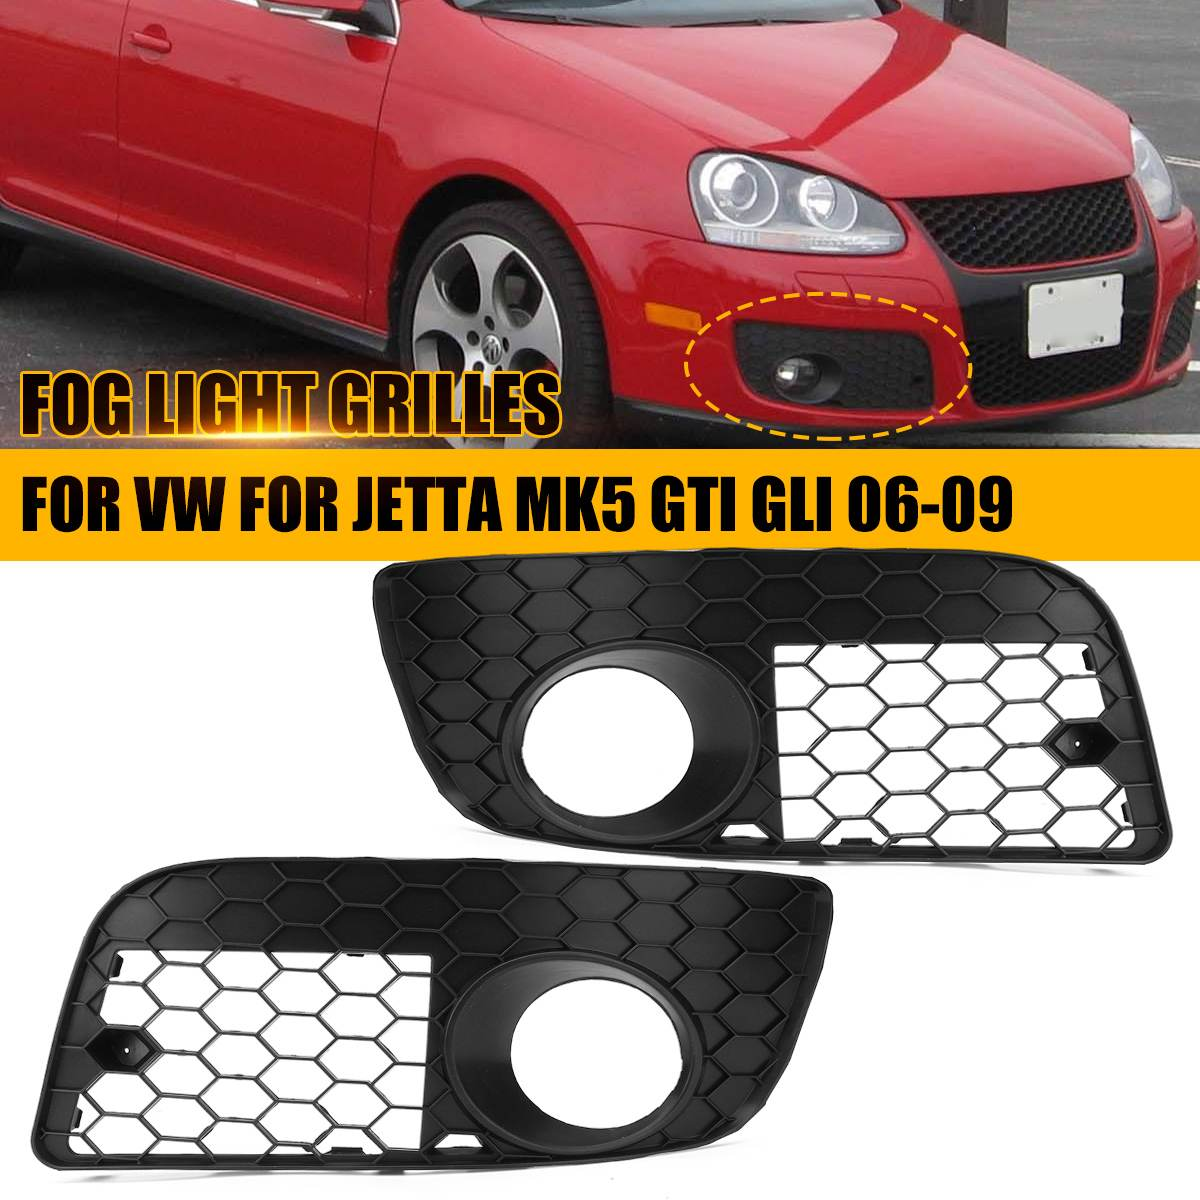 Pair Car Honeycomb Grilles Hex Mesh Fog Light Open Vent Grilles For VW for Jetta MK5 GTI GLI 2006 2007 2008 2009 Car accessories